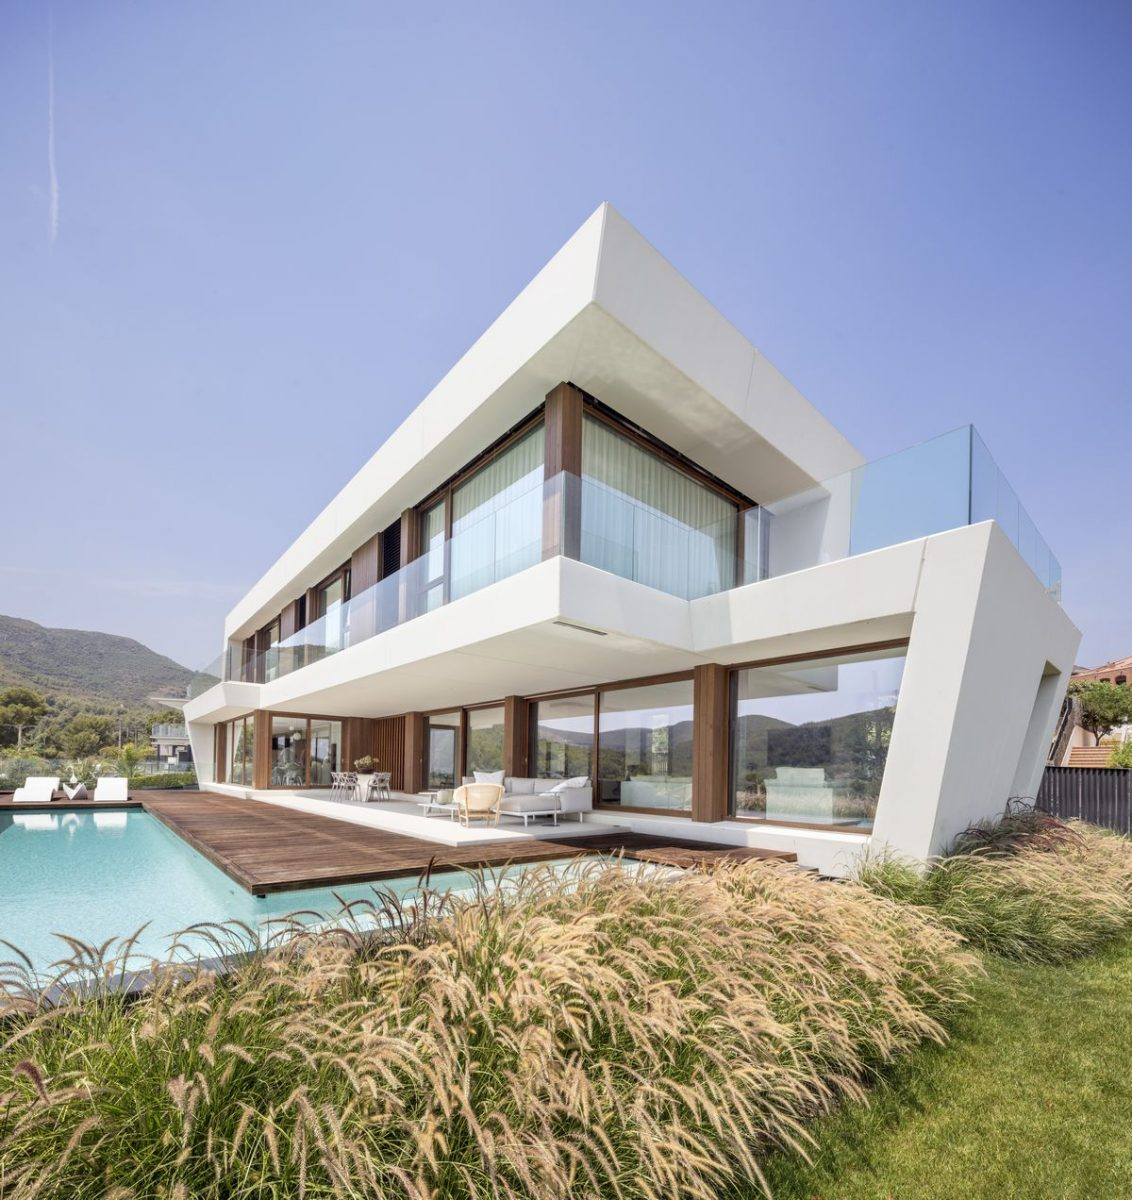 panoramic-house_on-a_images-by-adria-goula_4-1200x1200.jpg